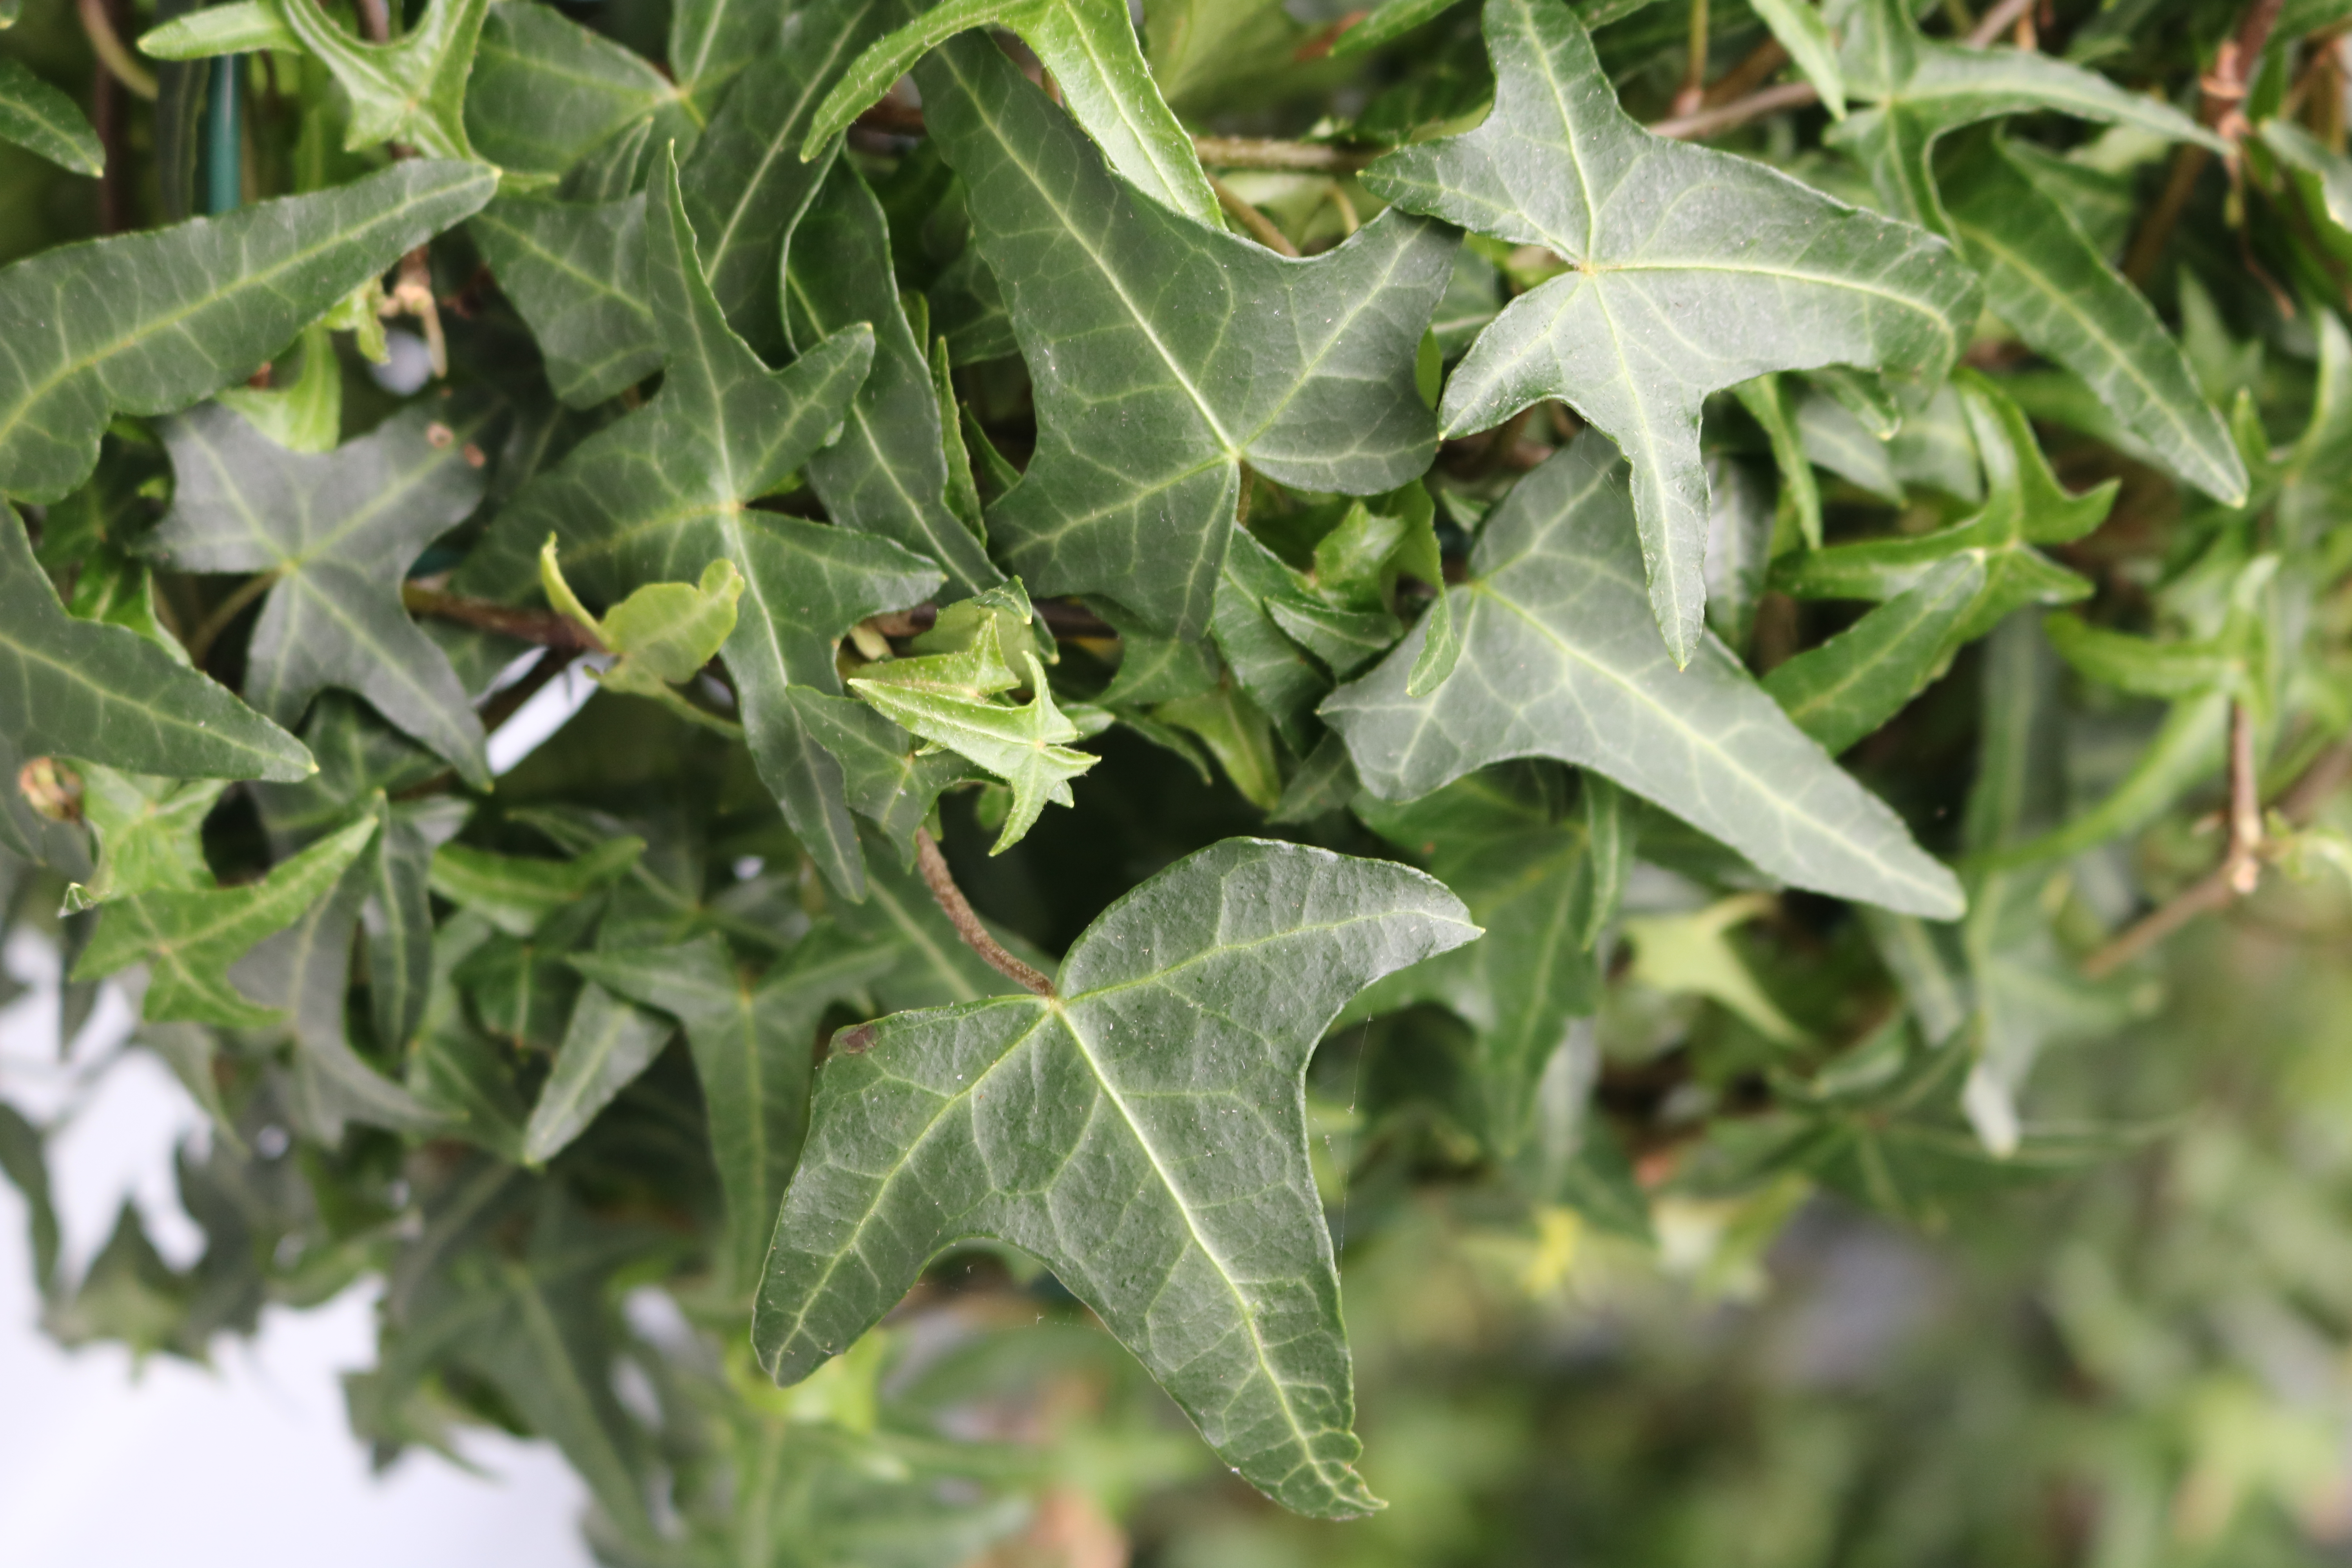 Ivy Topiary | Hedera helix| Hedera helix